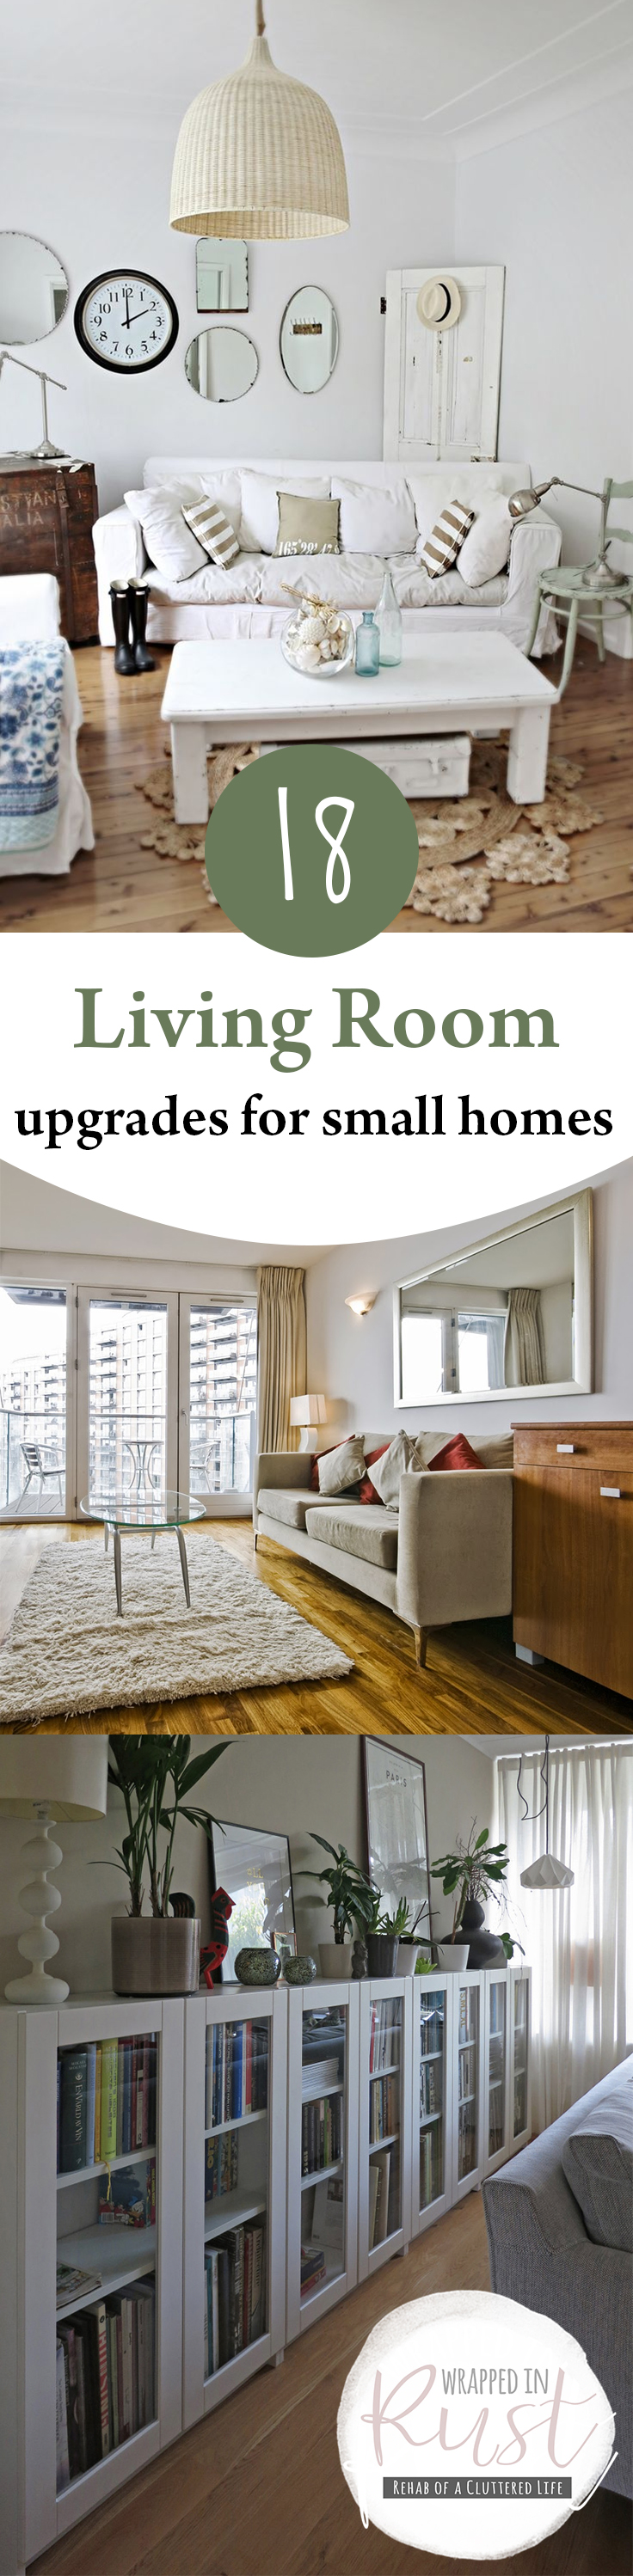 18 living room upgrades for small homes page 20 of 20 for Living room upgrades